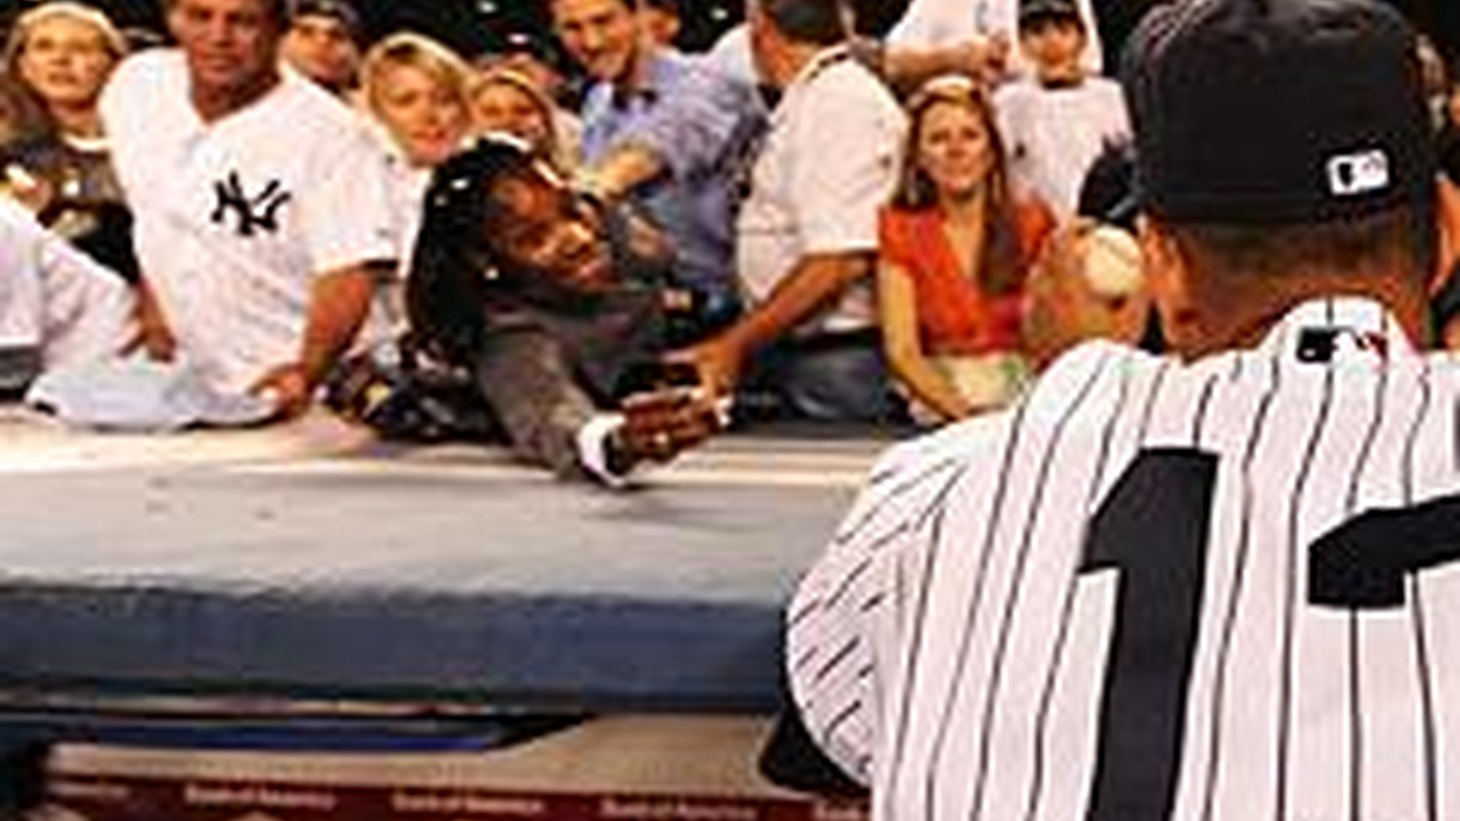 Let's start with the all-Sunday-long farewell to Yankee Stadium. From Paul Simon to Henry Kissinger to Babe Ruth's 92-year old daughter, fans and players of both today and yesterday, and cultural heavyweights spoke poetry about their lifelong memories of this special place. I admit I cried several times on Sunday as the televised tributes ran one after the other...